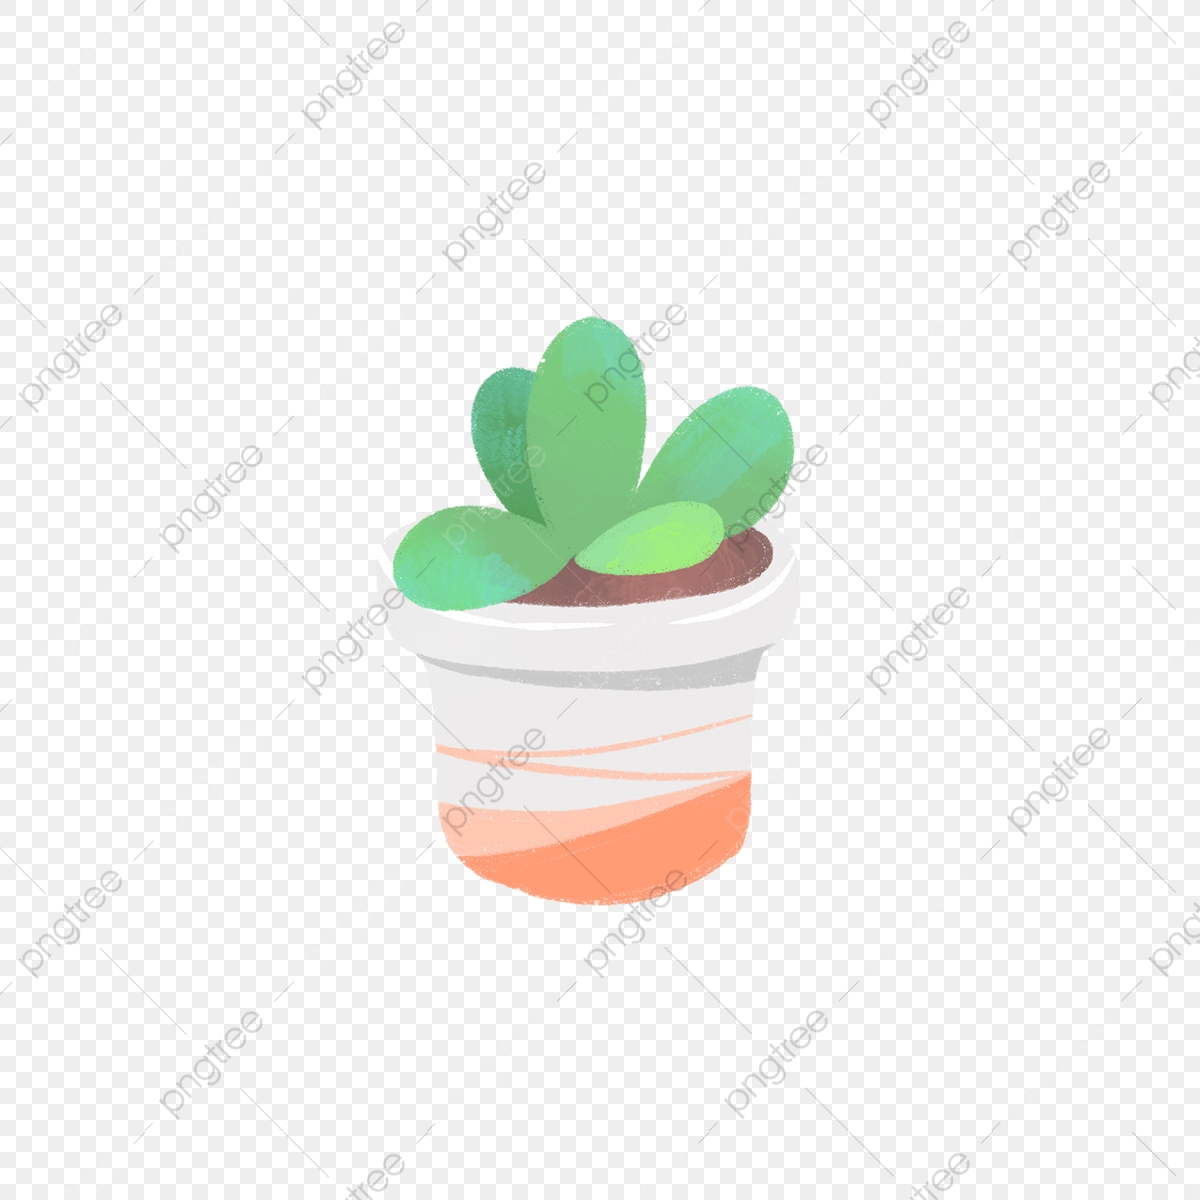 Hand Drawn Cute Succulent In Orange Pot Drawing Nature Hand Drawn Png Transparent Clipart Image And Psd File For Free Download